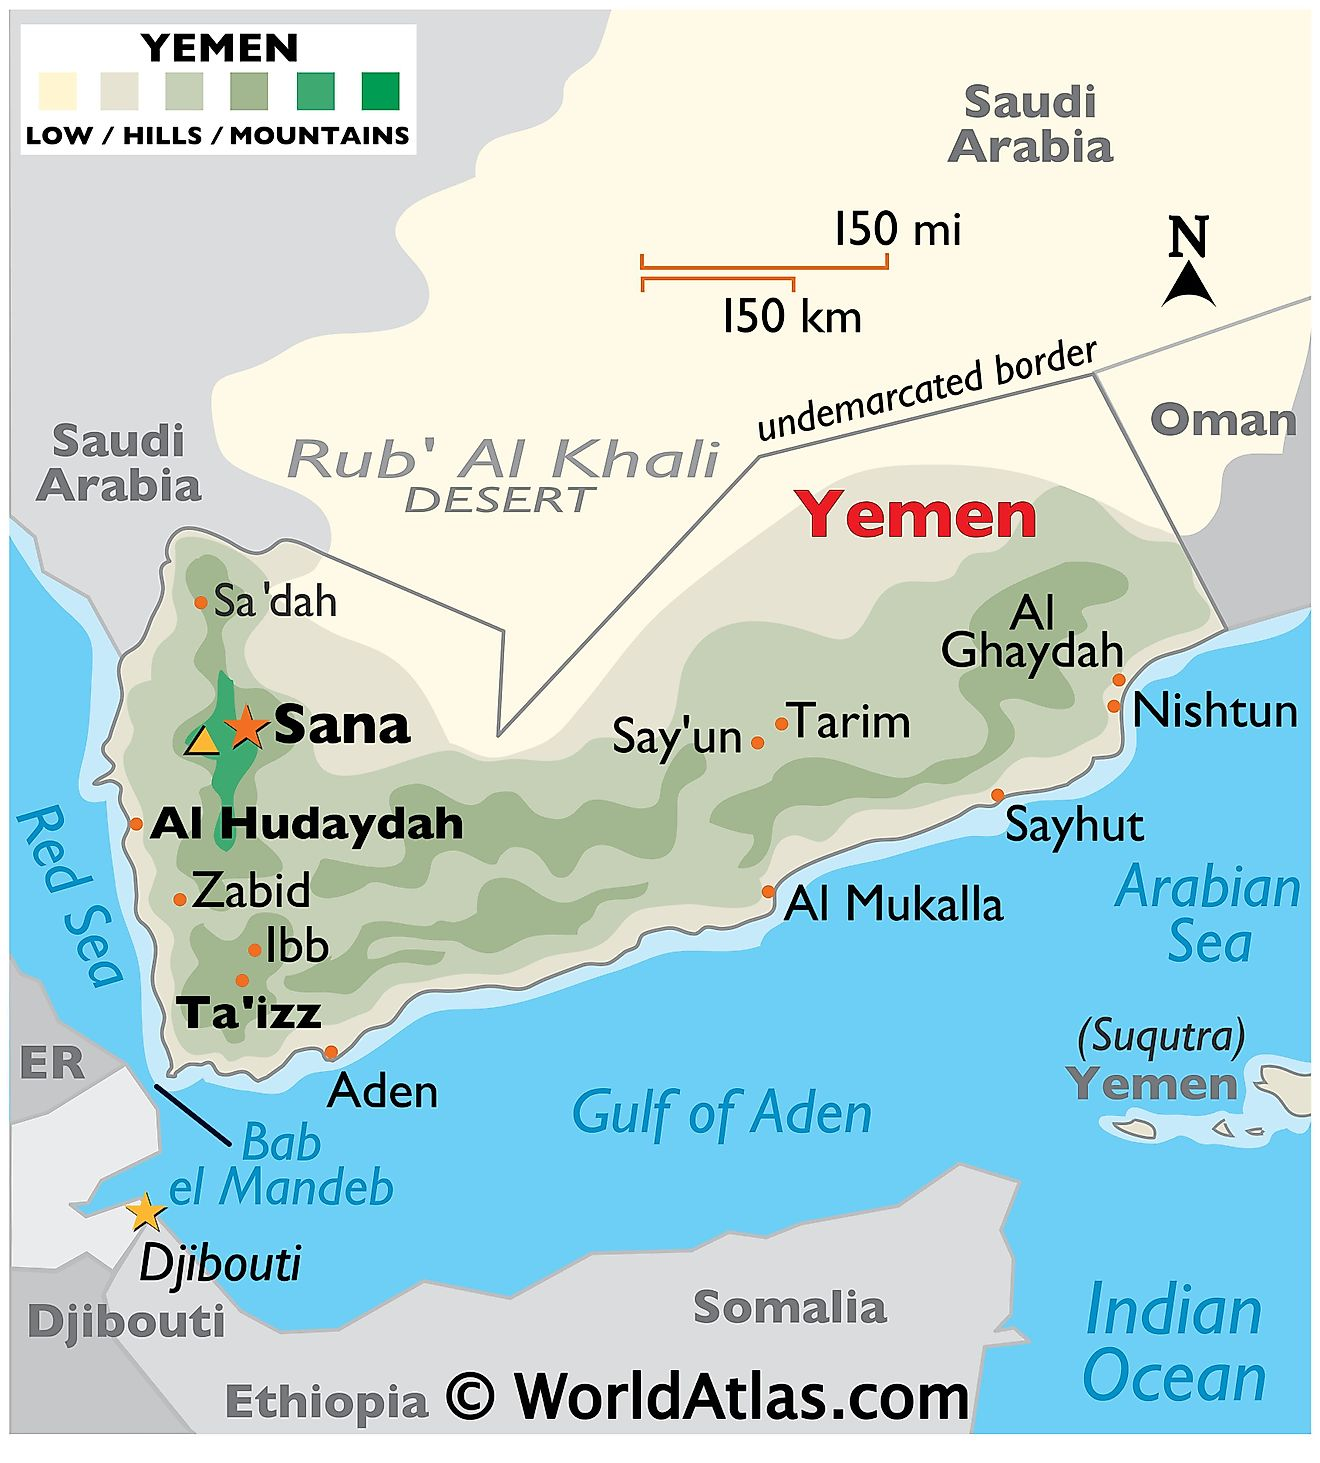 The Physical Map of Yemen displaying state boundaries, relief, islands, highest point, important cities, etc.